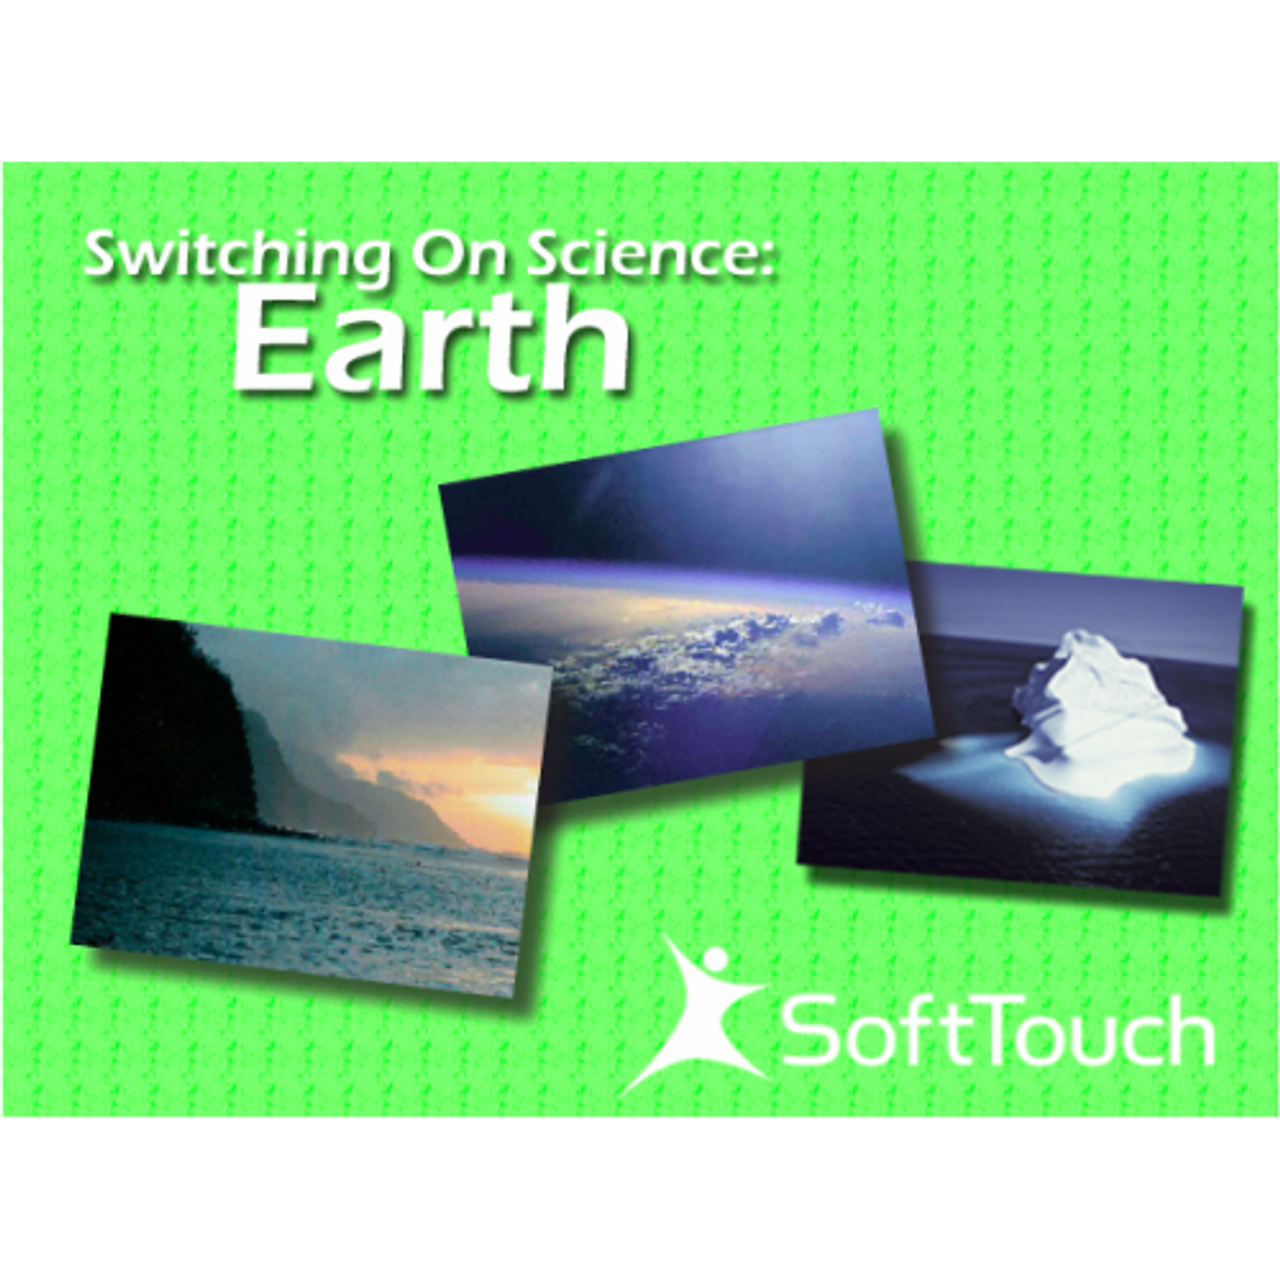 Switching on Science - Earth